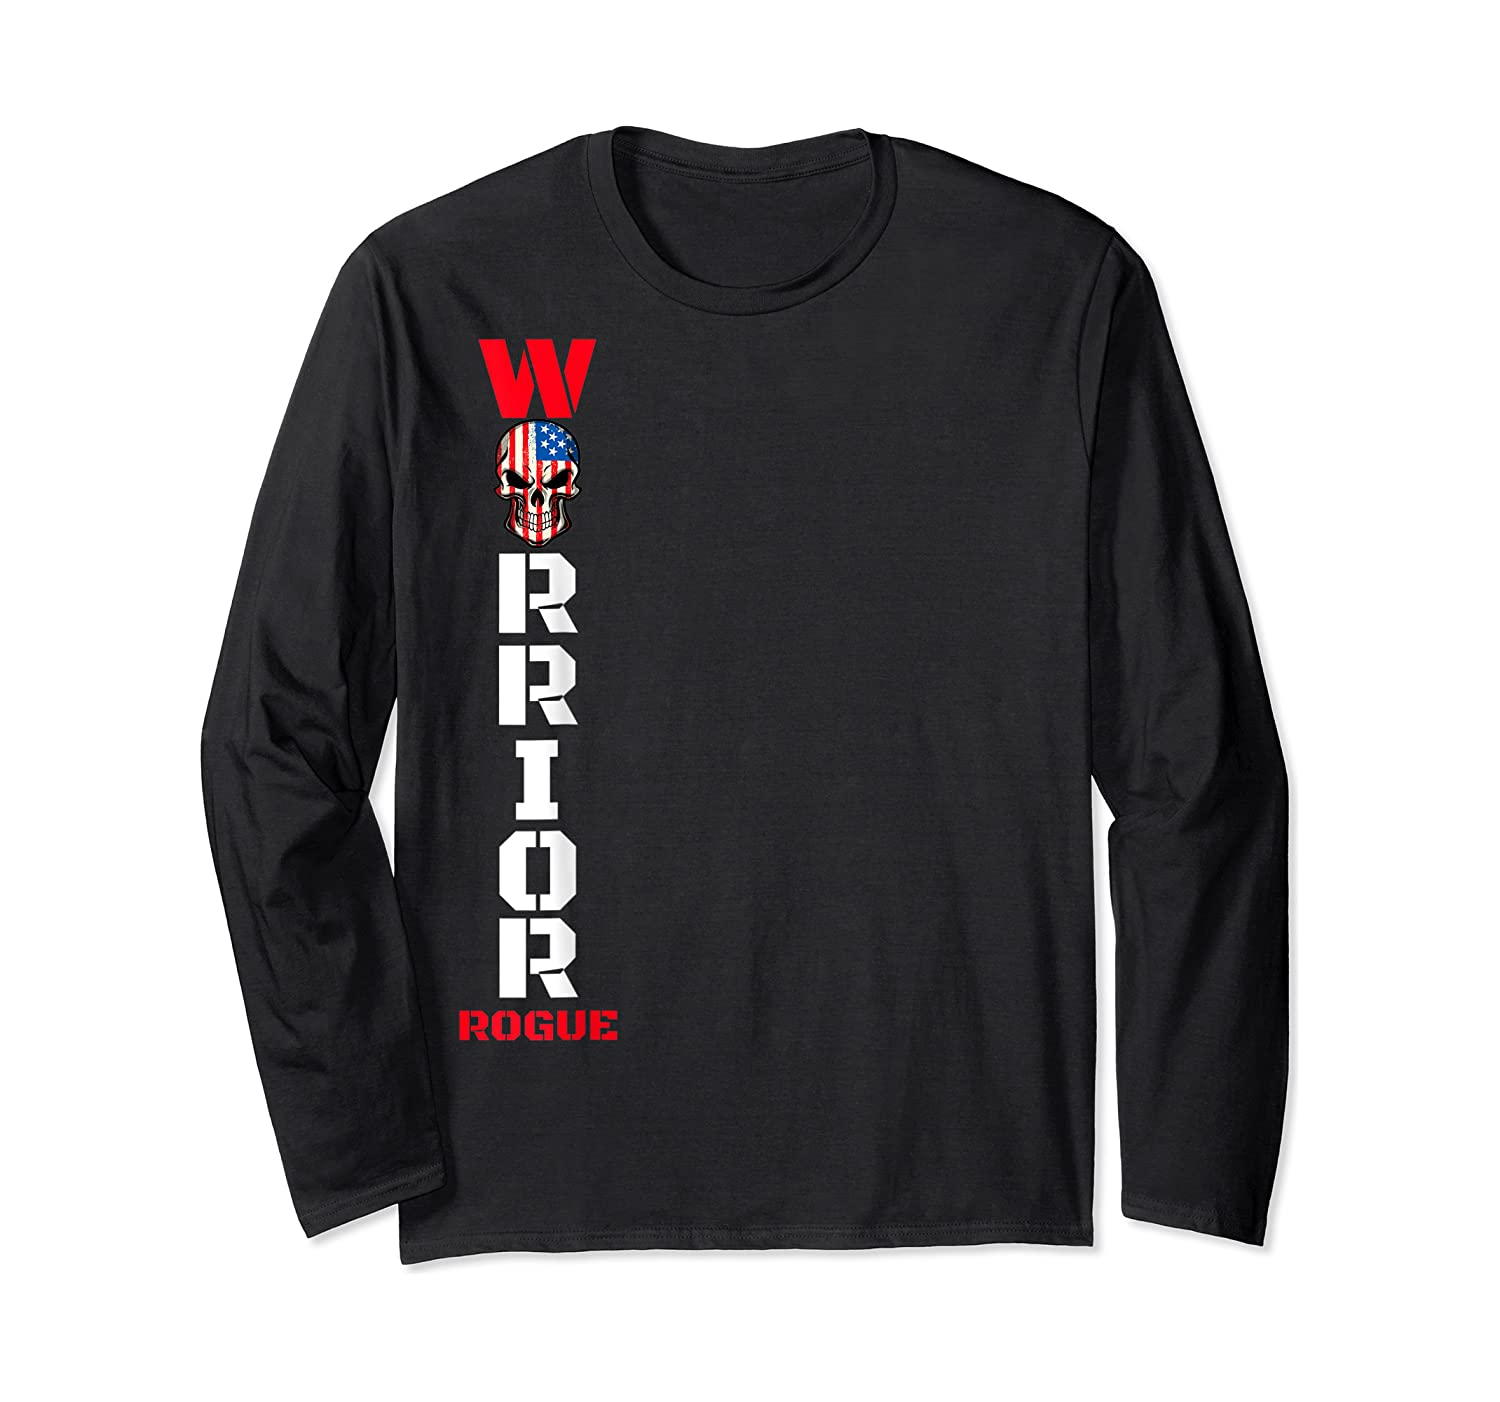 Supreme Rogue Warrior Patriot Military Armed Forces Rebel T-shirt Long Sleeve T-shirt